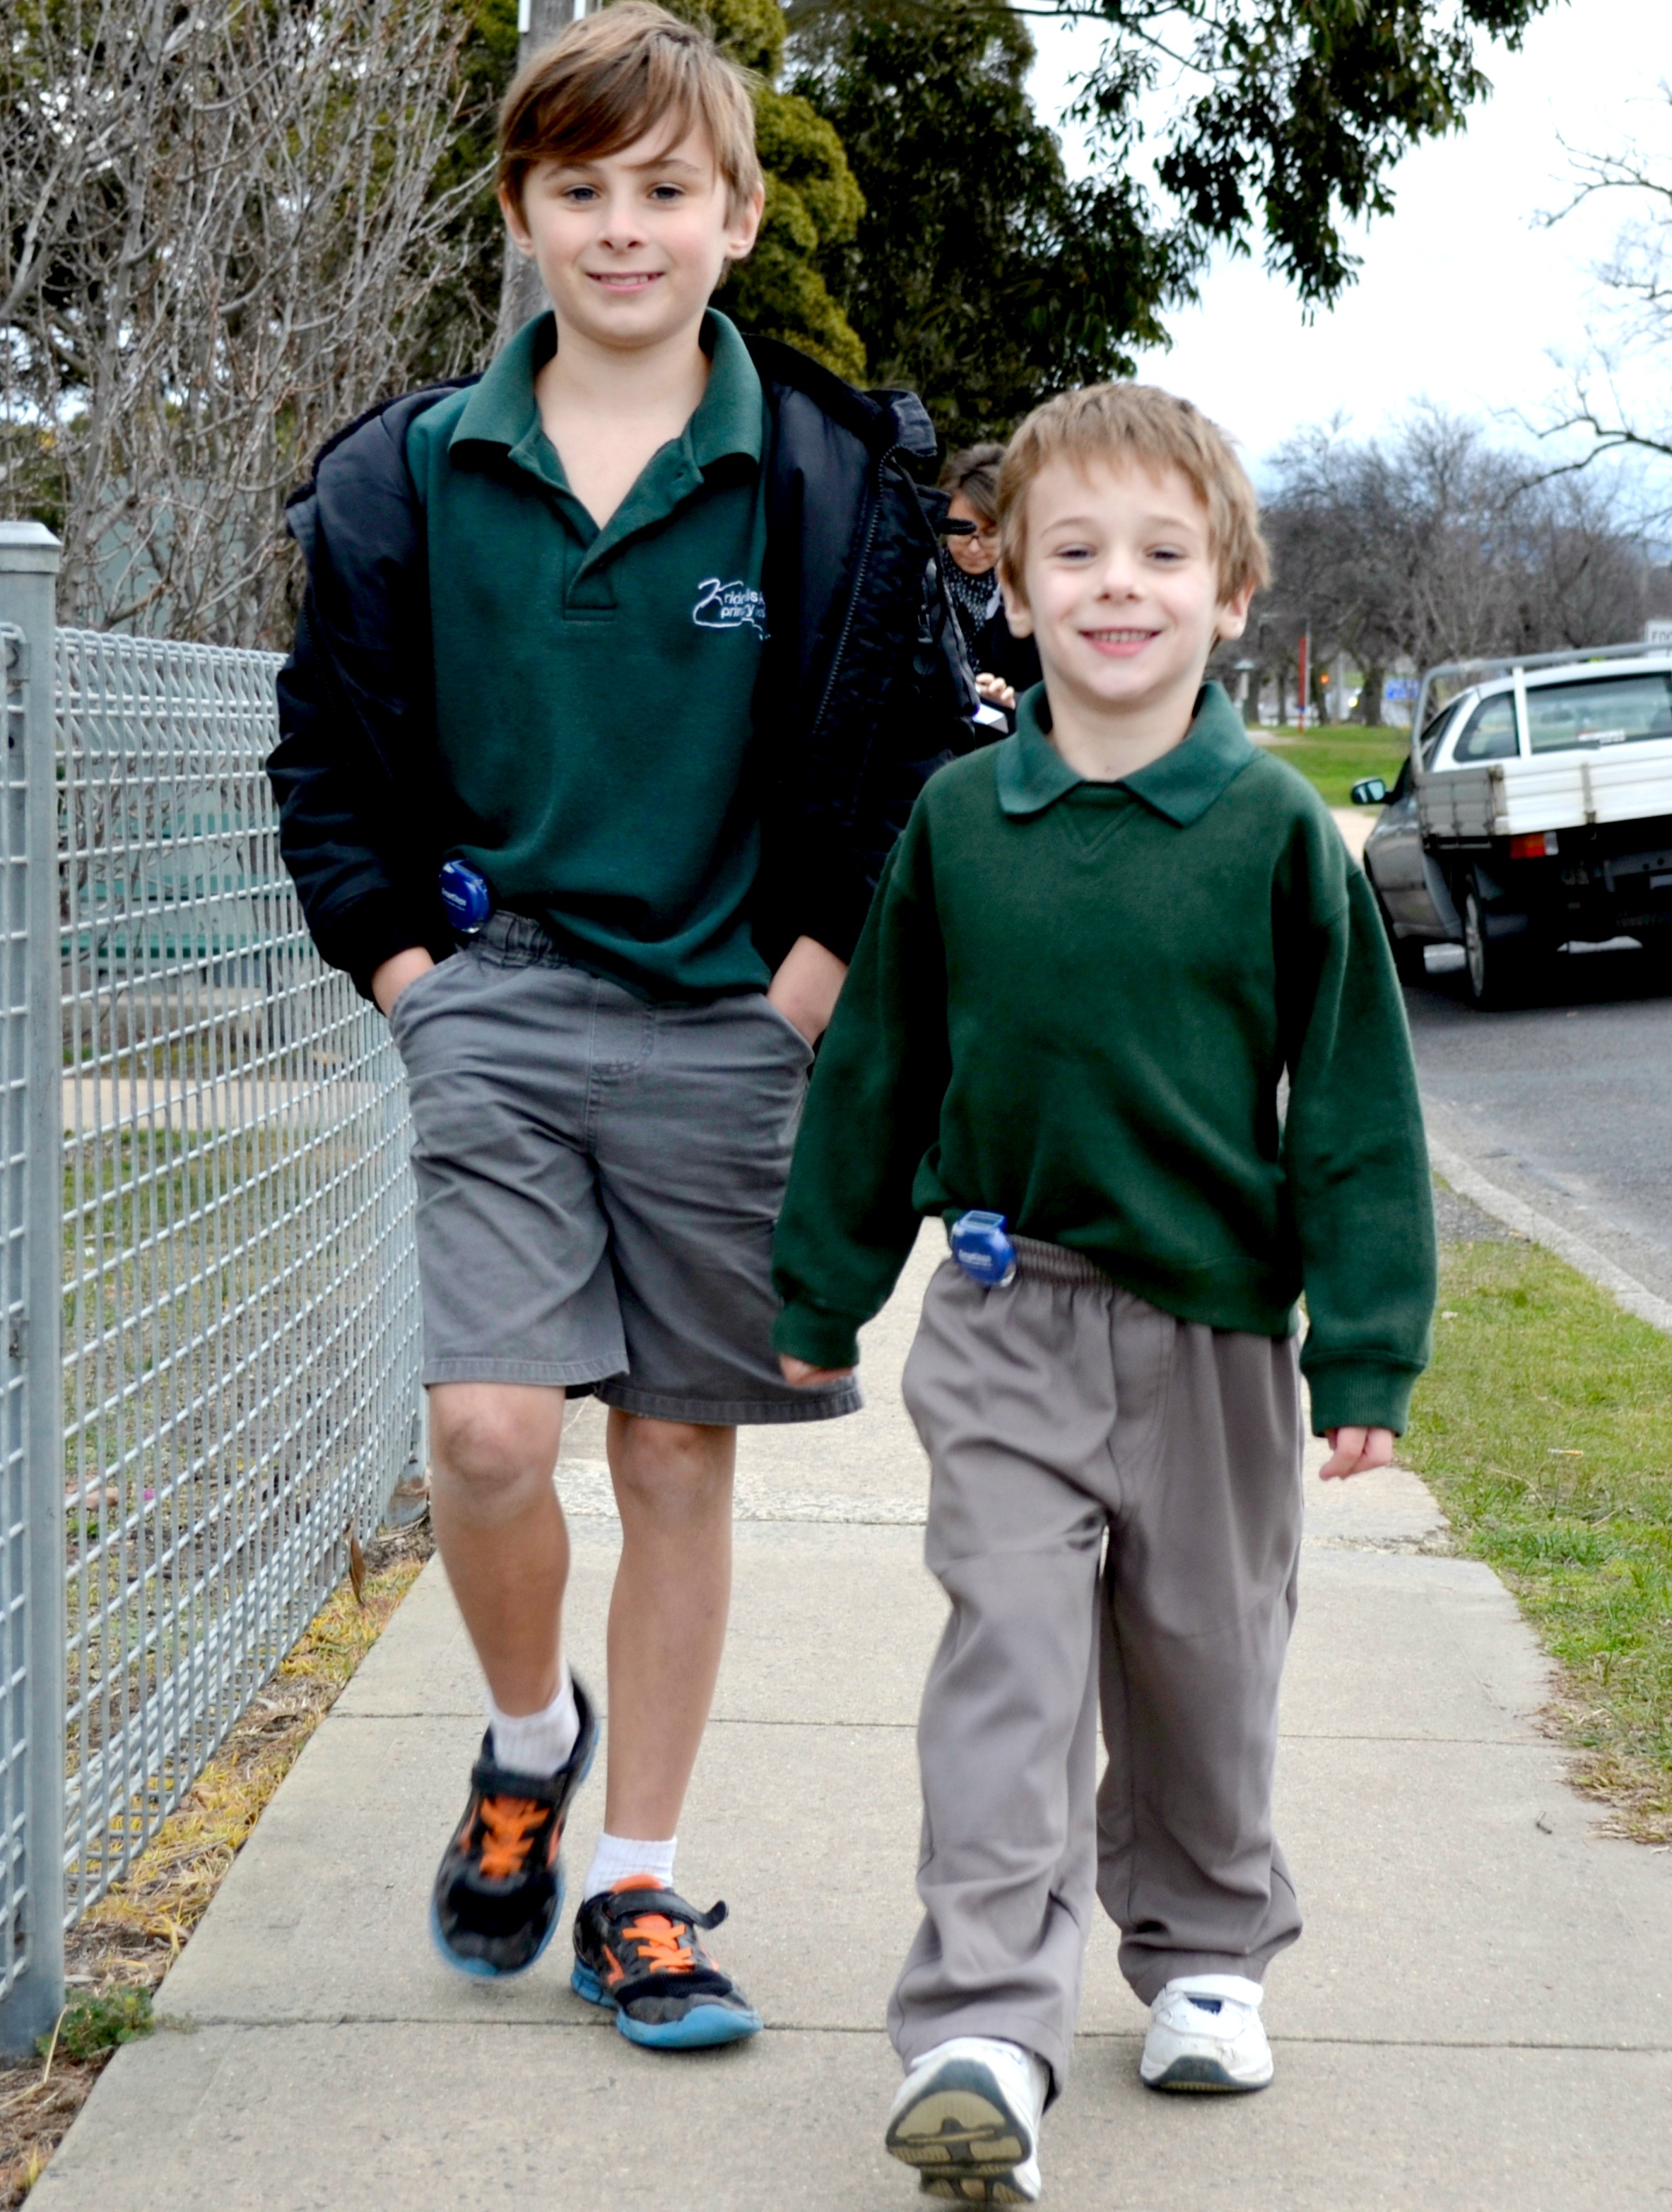 Boys walking with pedometers